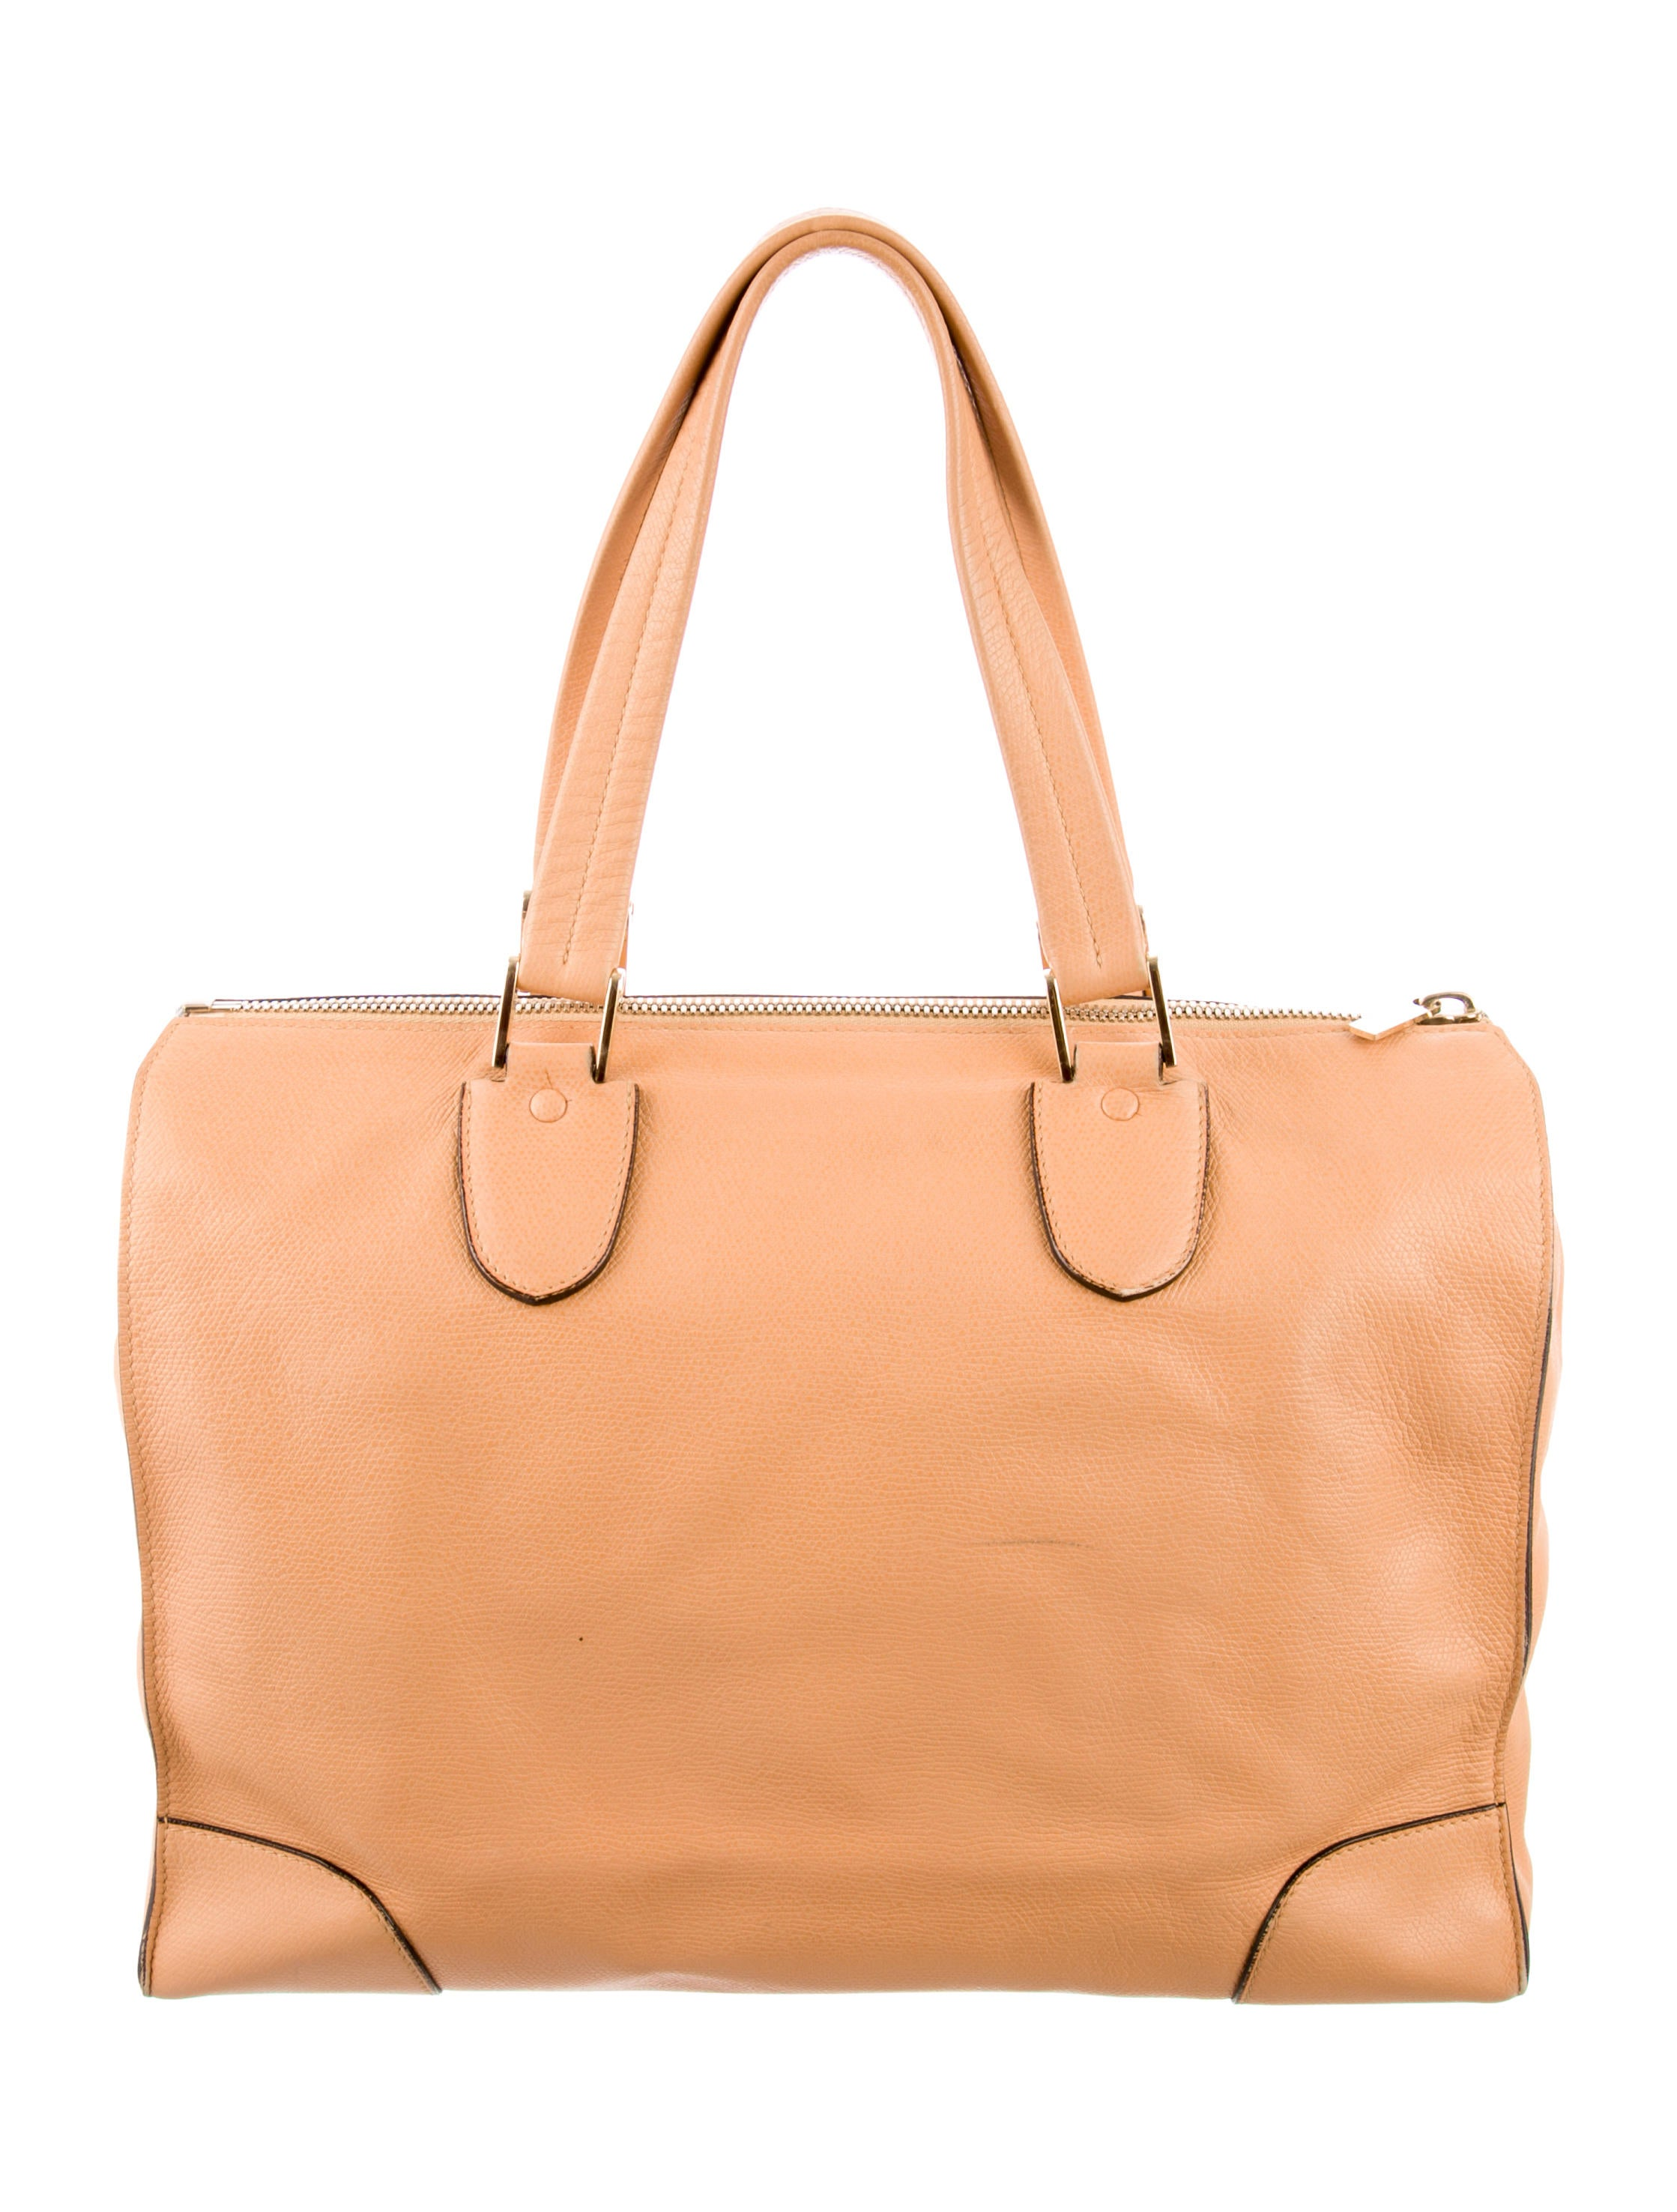 Valextra Leather Babila Bag - Handbags